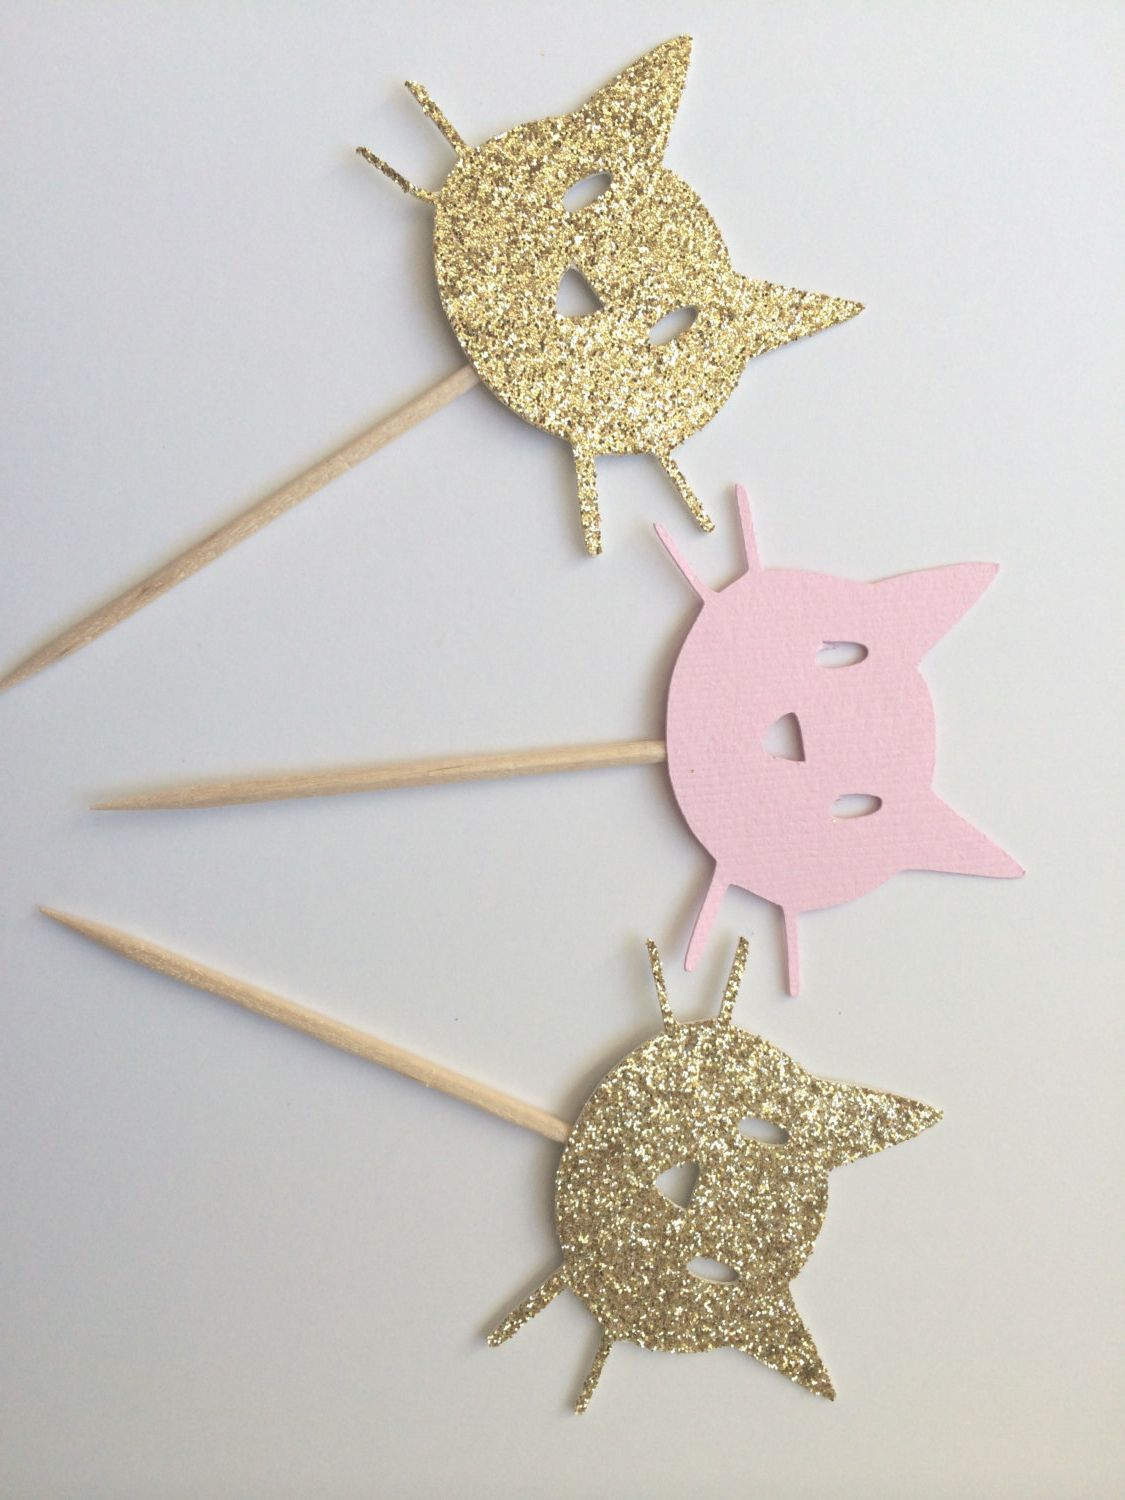 6 Gold & Pink Kitty Cat Cupcake Toppers. Kitty Cat Party. Cupcake Decor. Gold Glitter Cats.